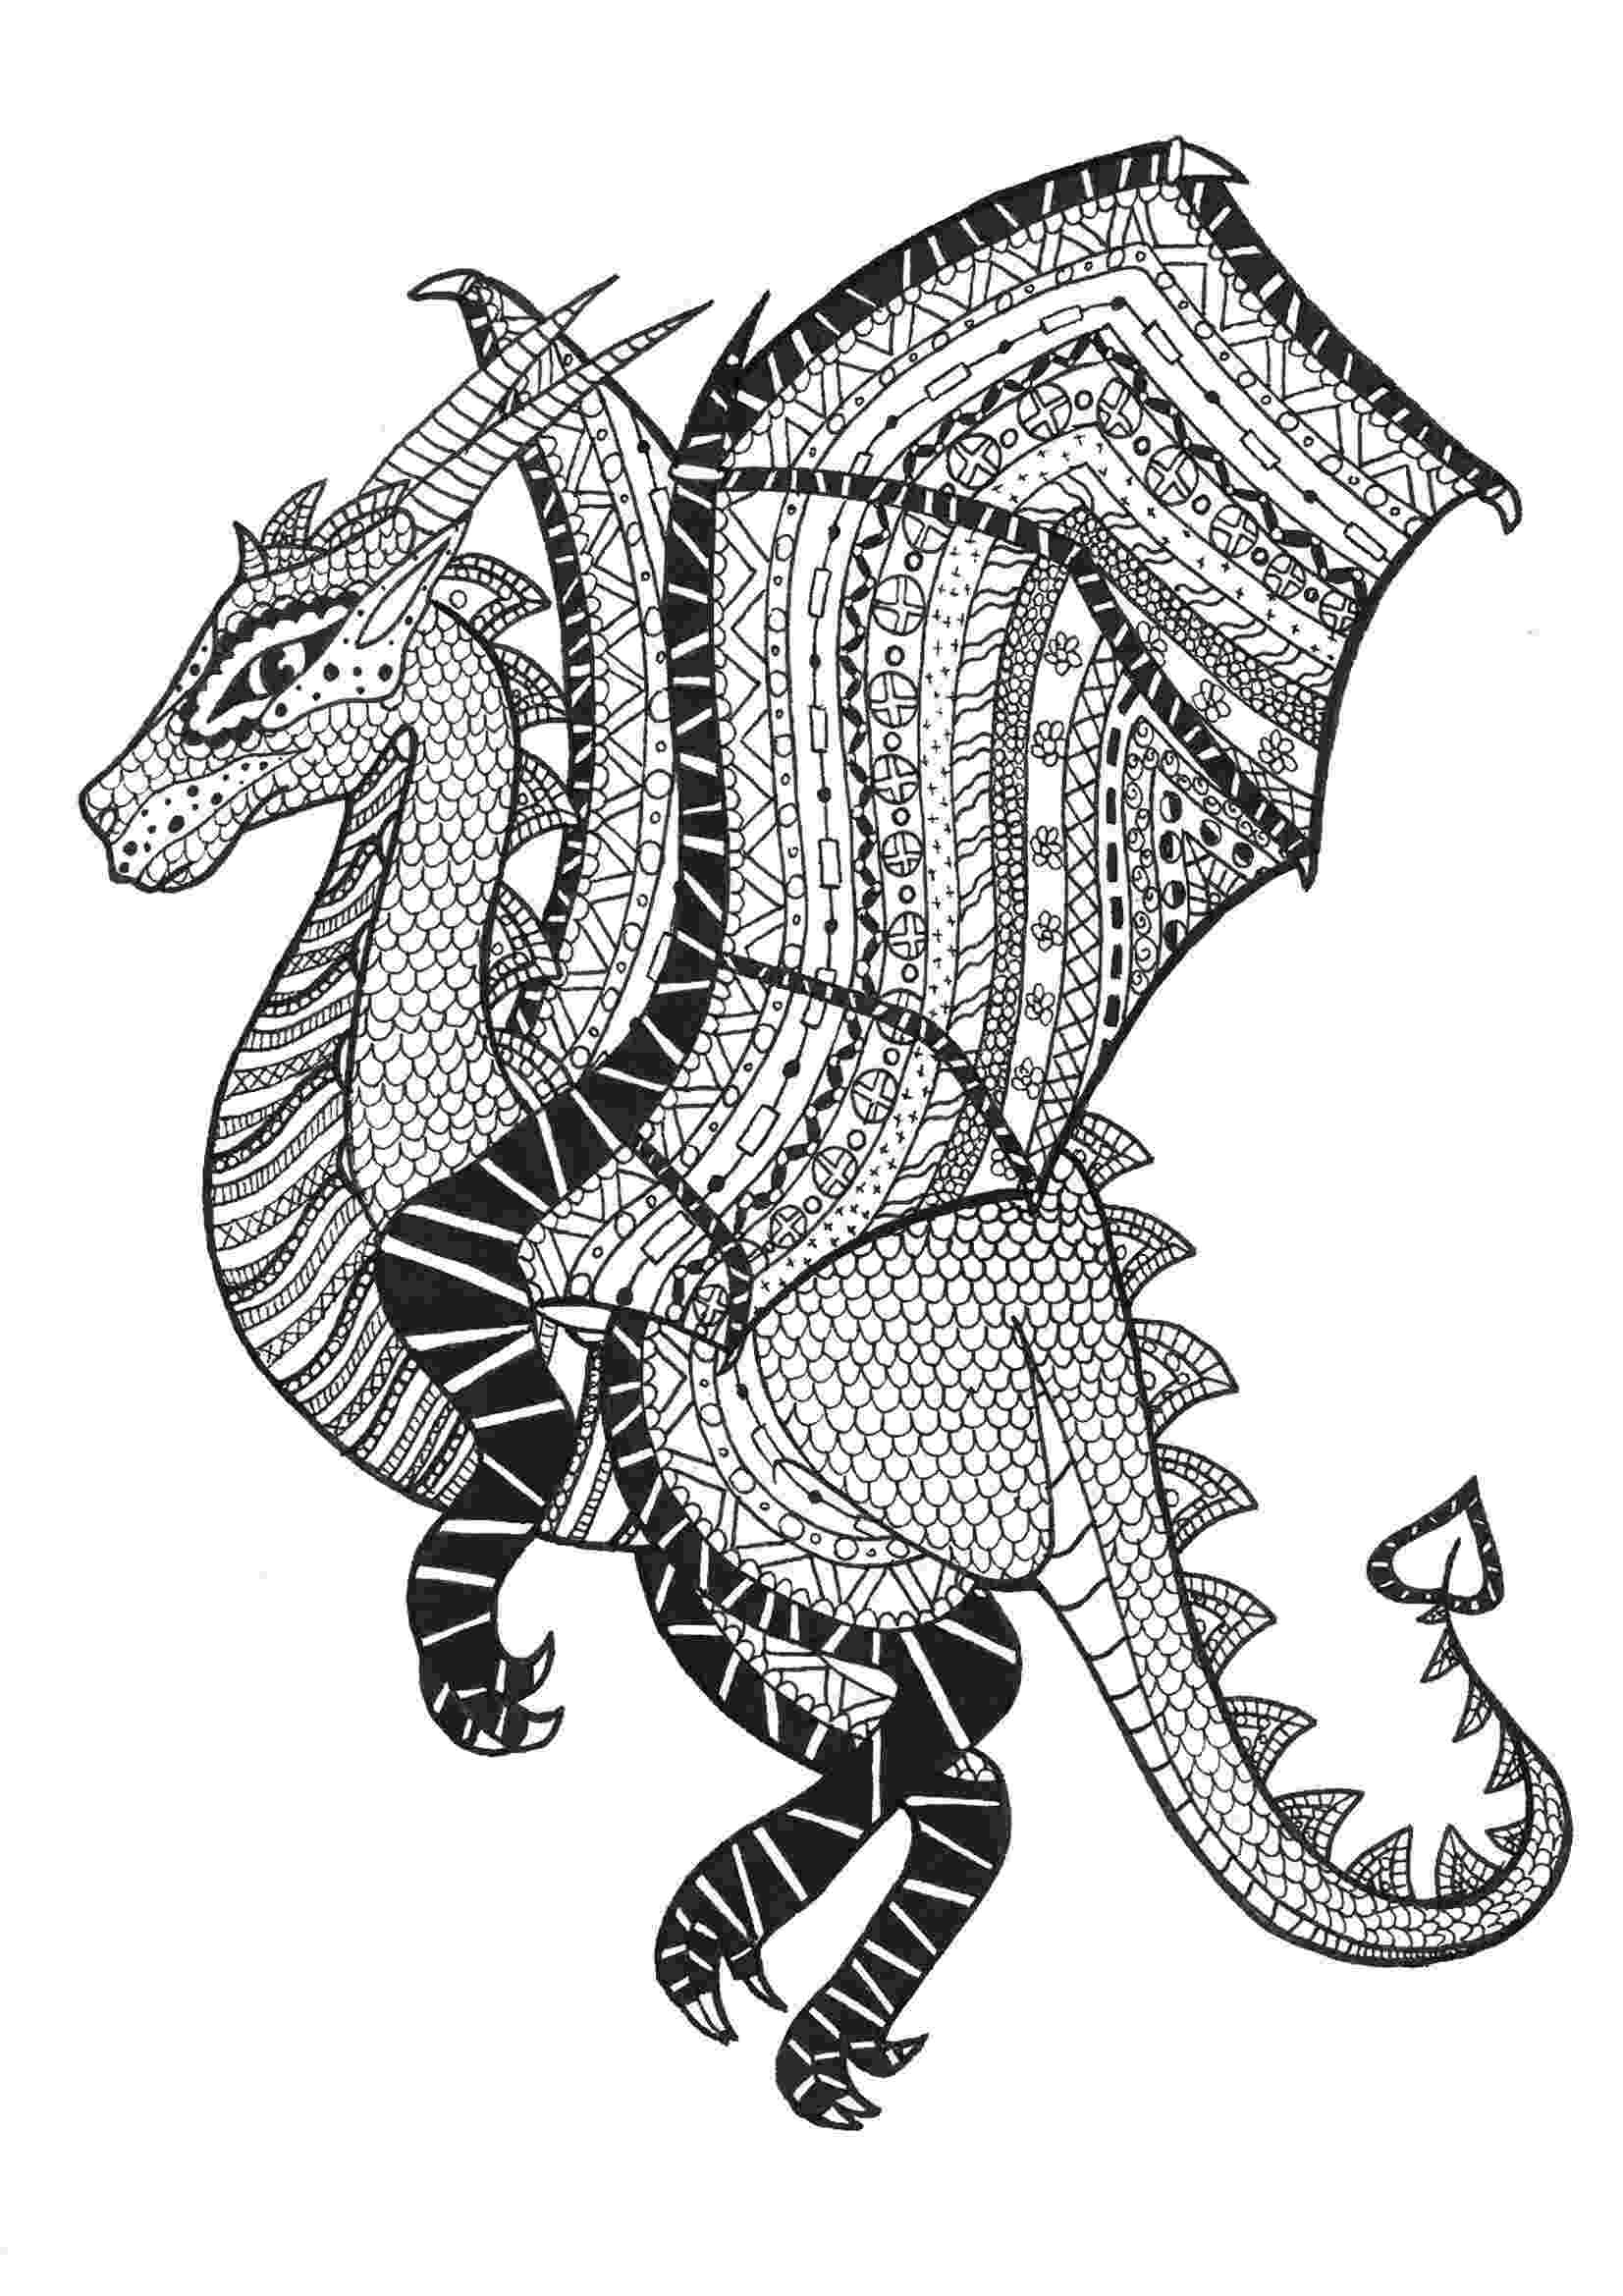 zentangle colouring pages animals pig coloring sheet animal coloring pdf zentangle colouring animals zentangle pages colouring